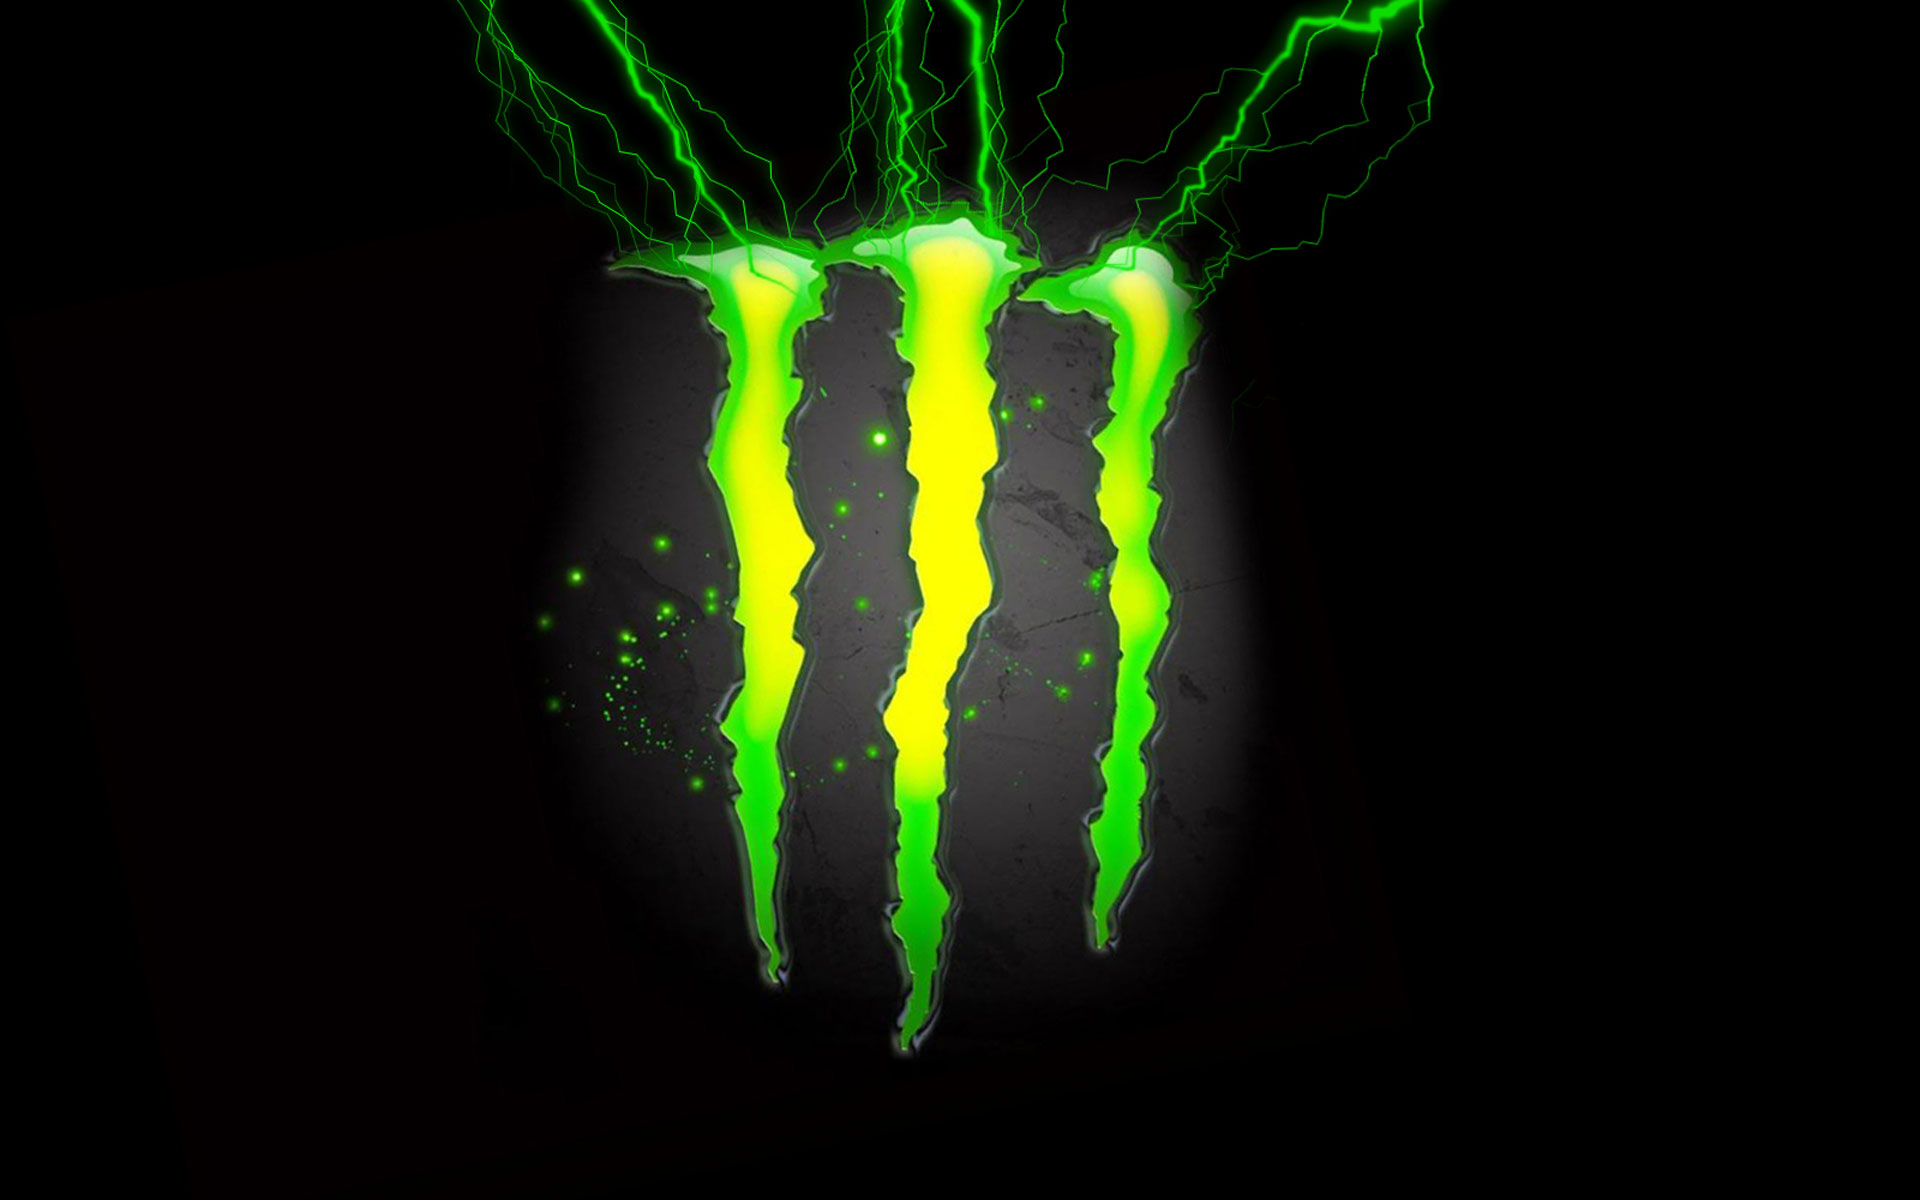 Monster Energy Free Wallpaper Hiresolution Best Jpg